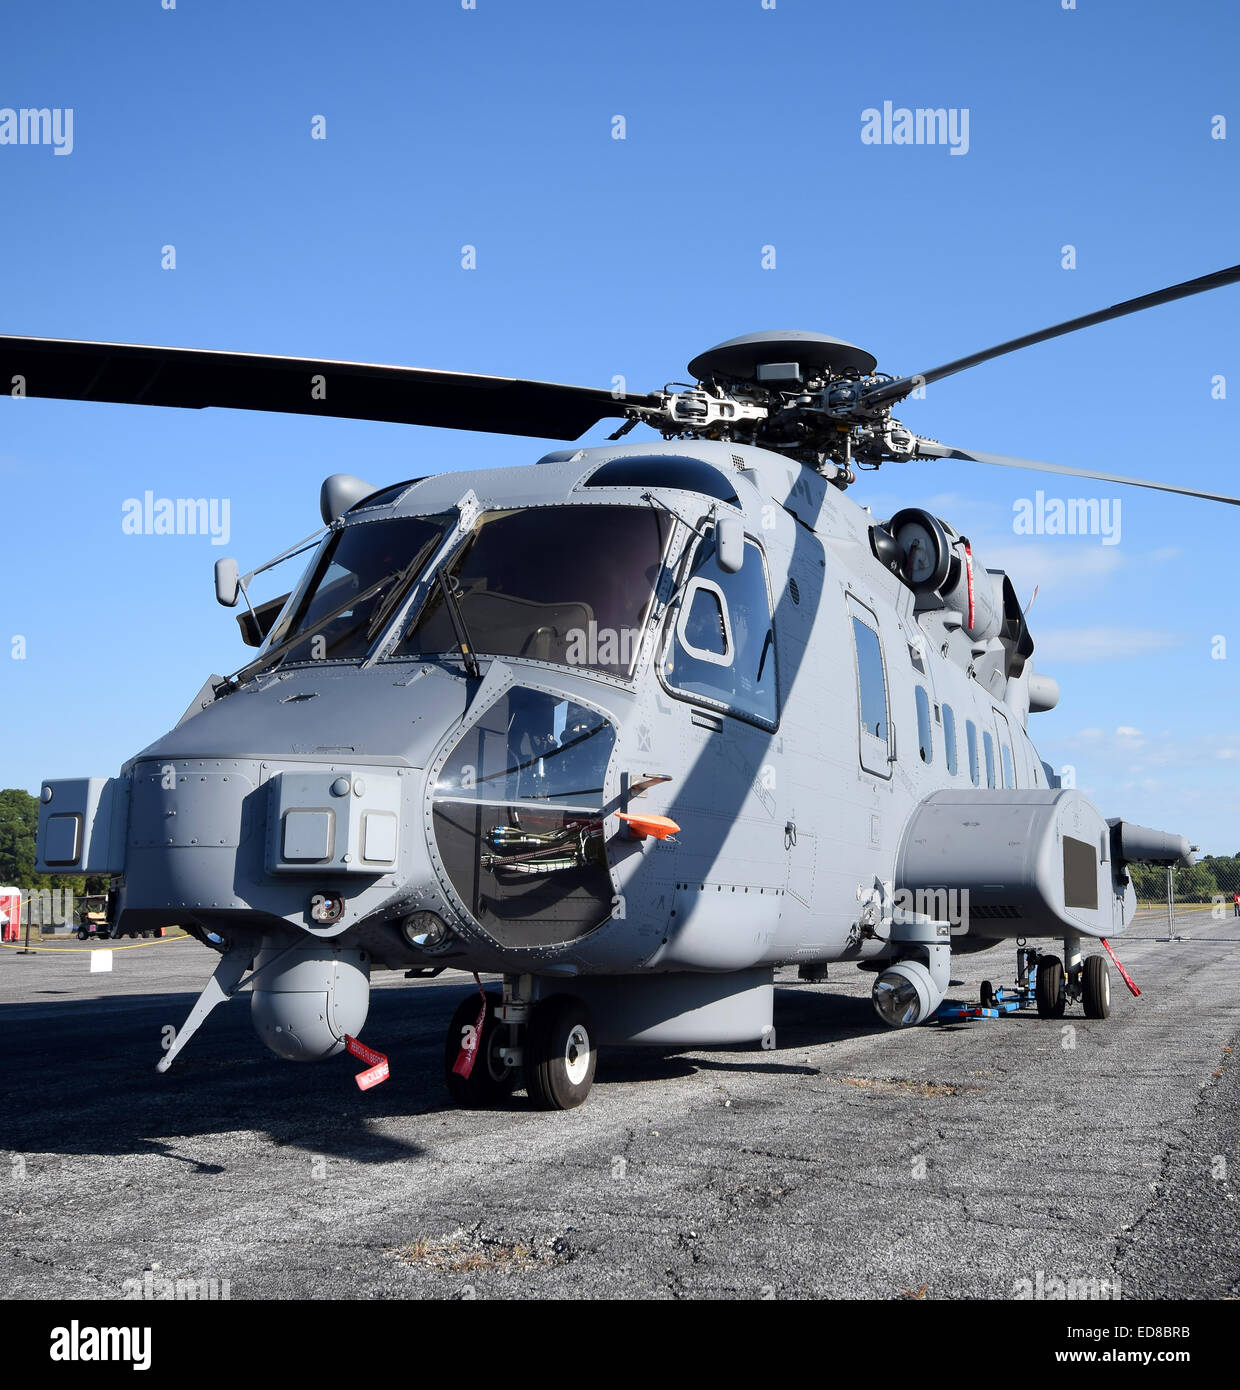 Heavy navy helicopter on the ground front view - Stock Image